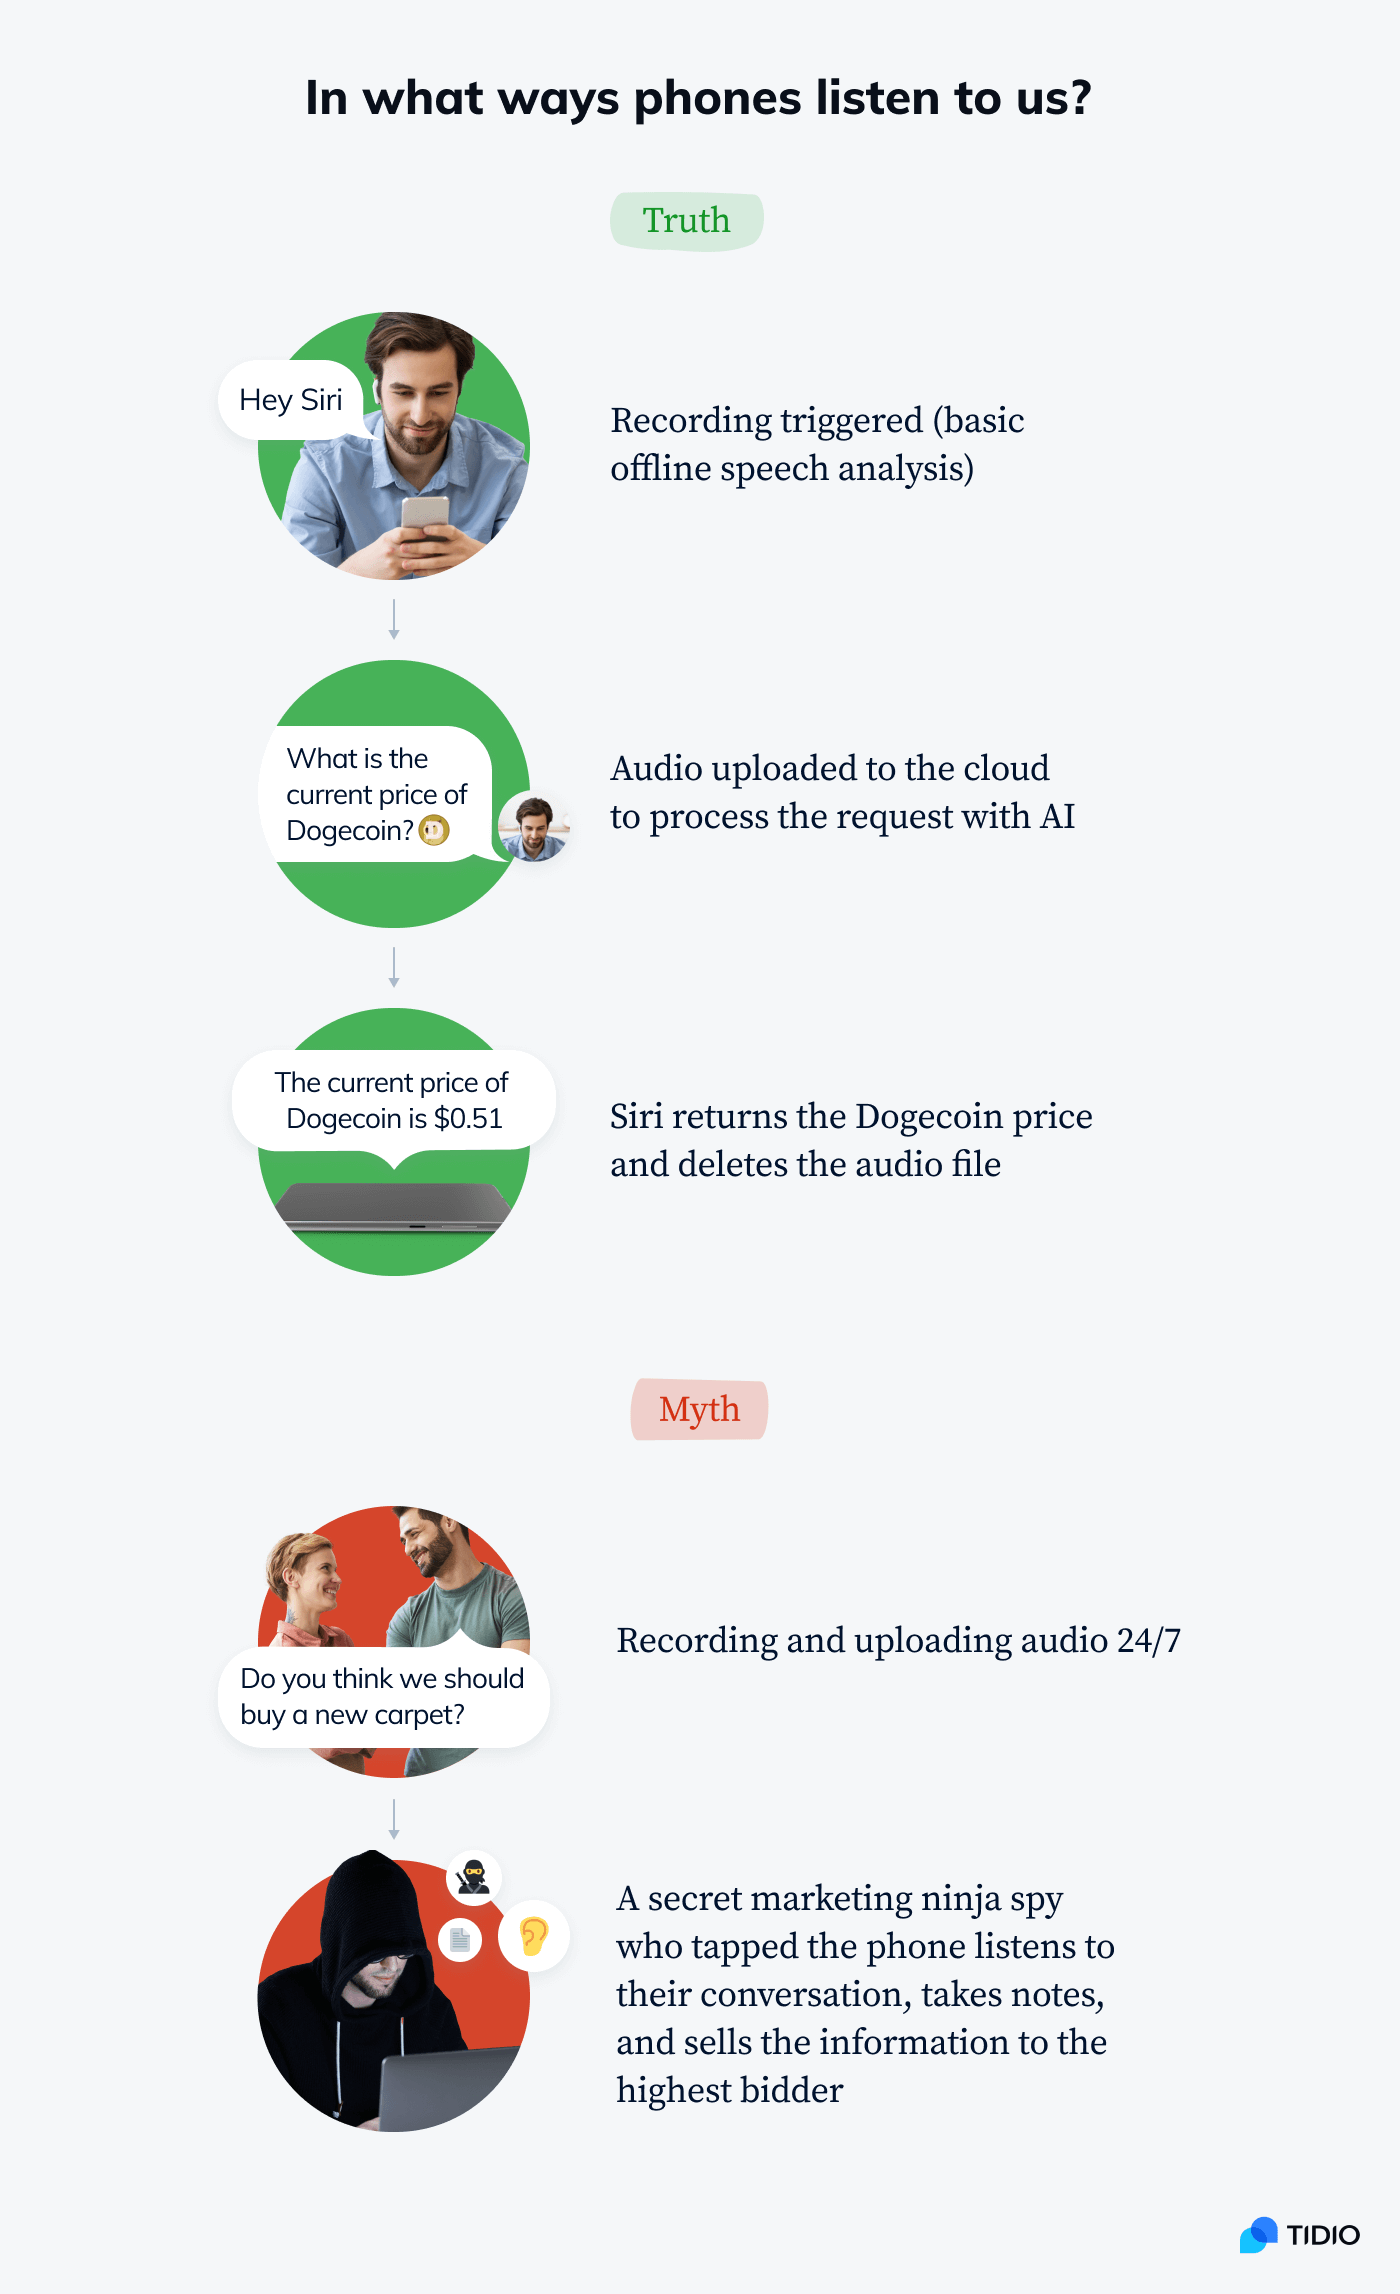 An infographic showing the difference between offline voice recognition triggers and constant audio recording